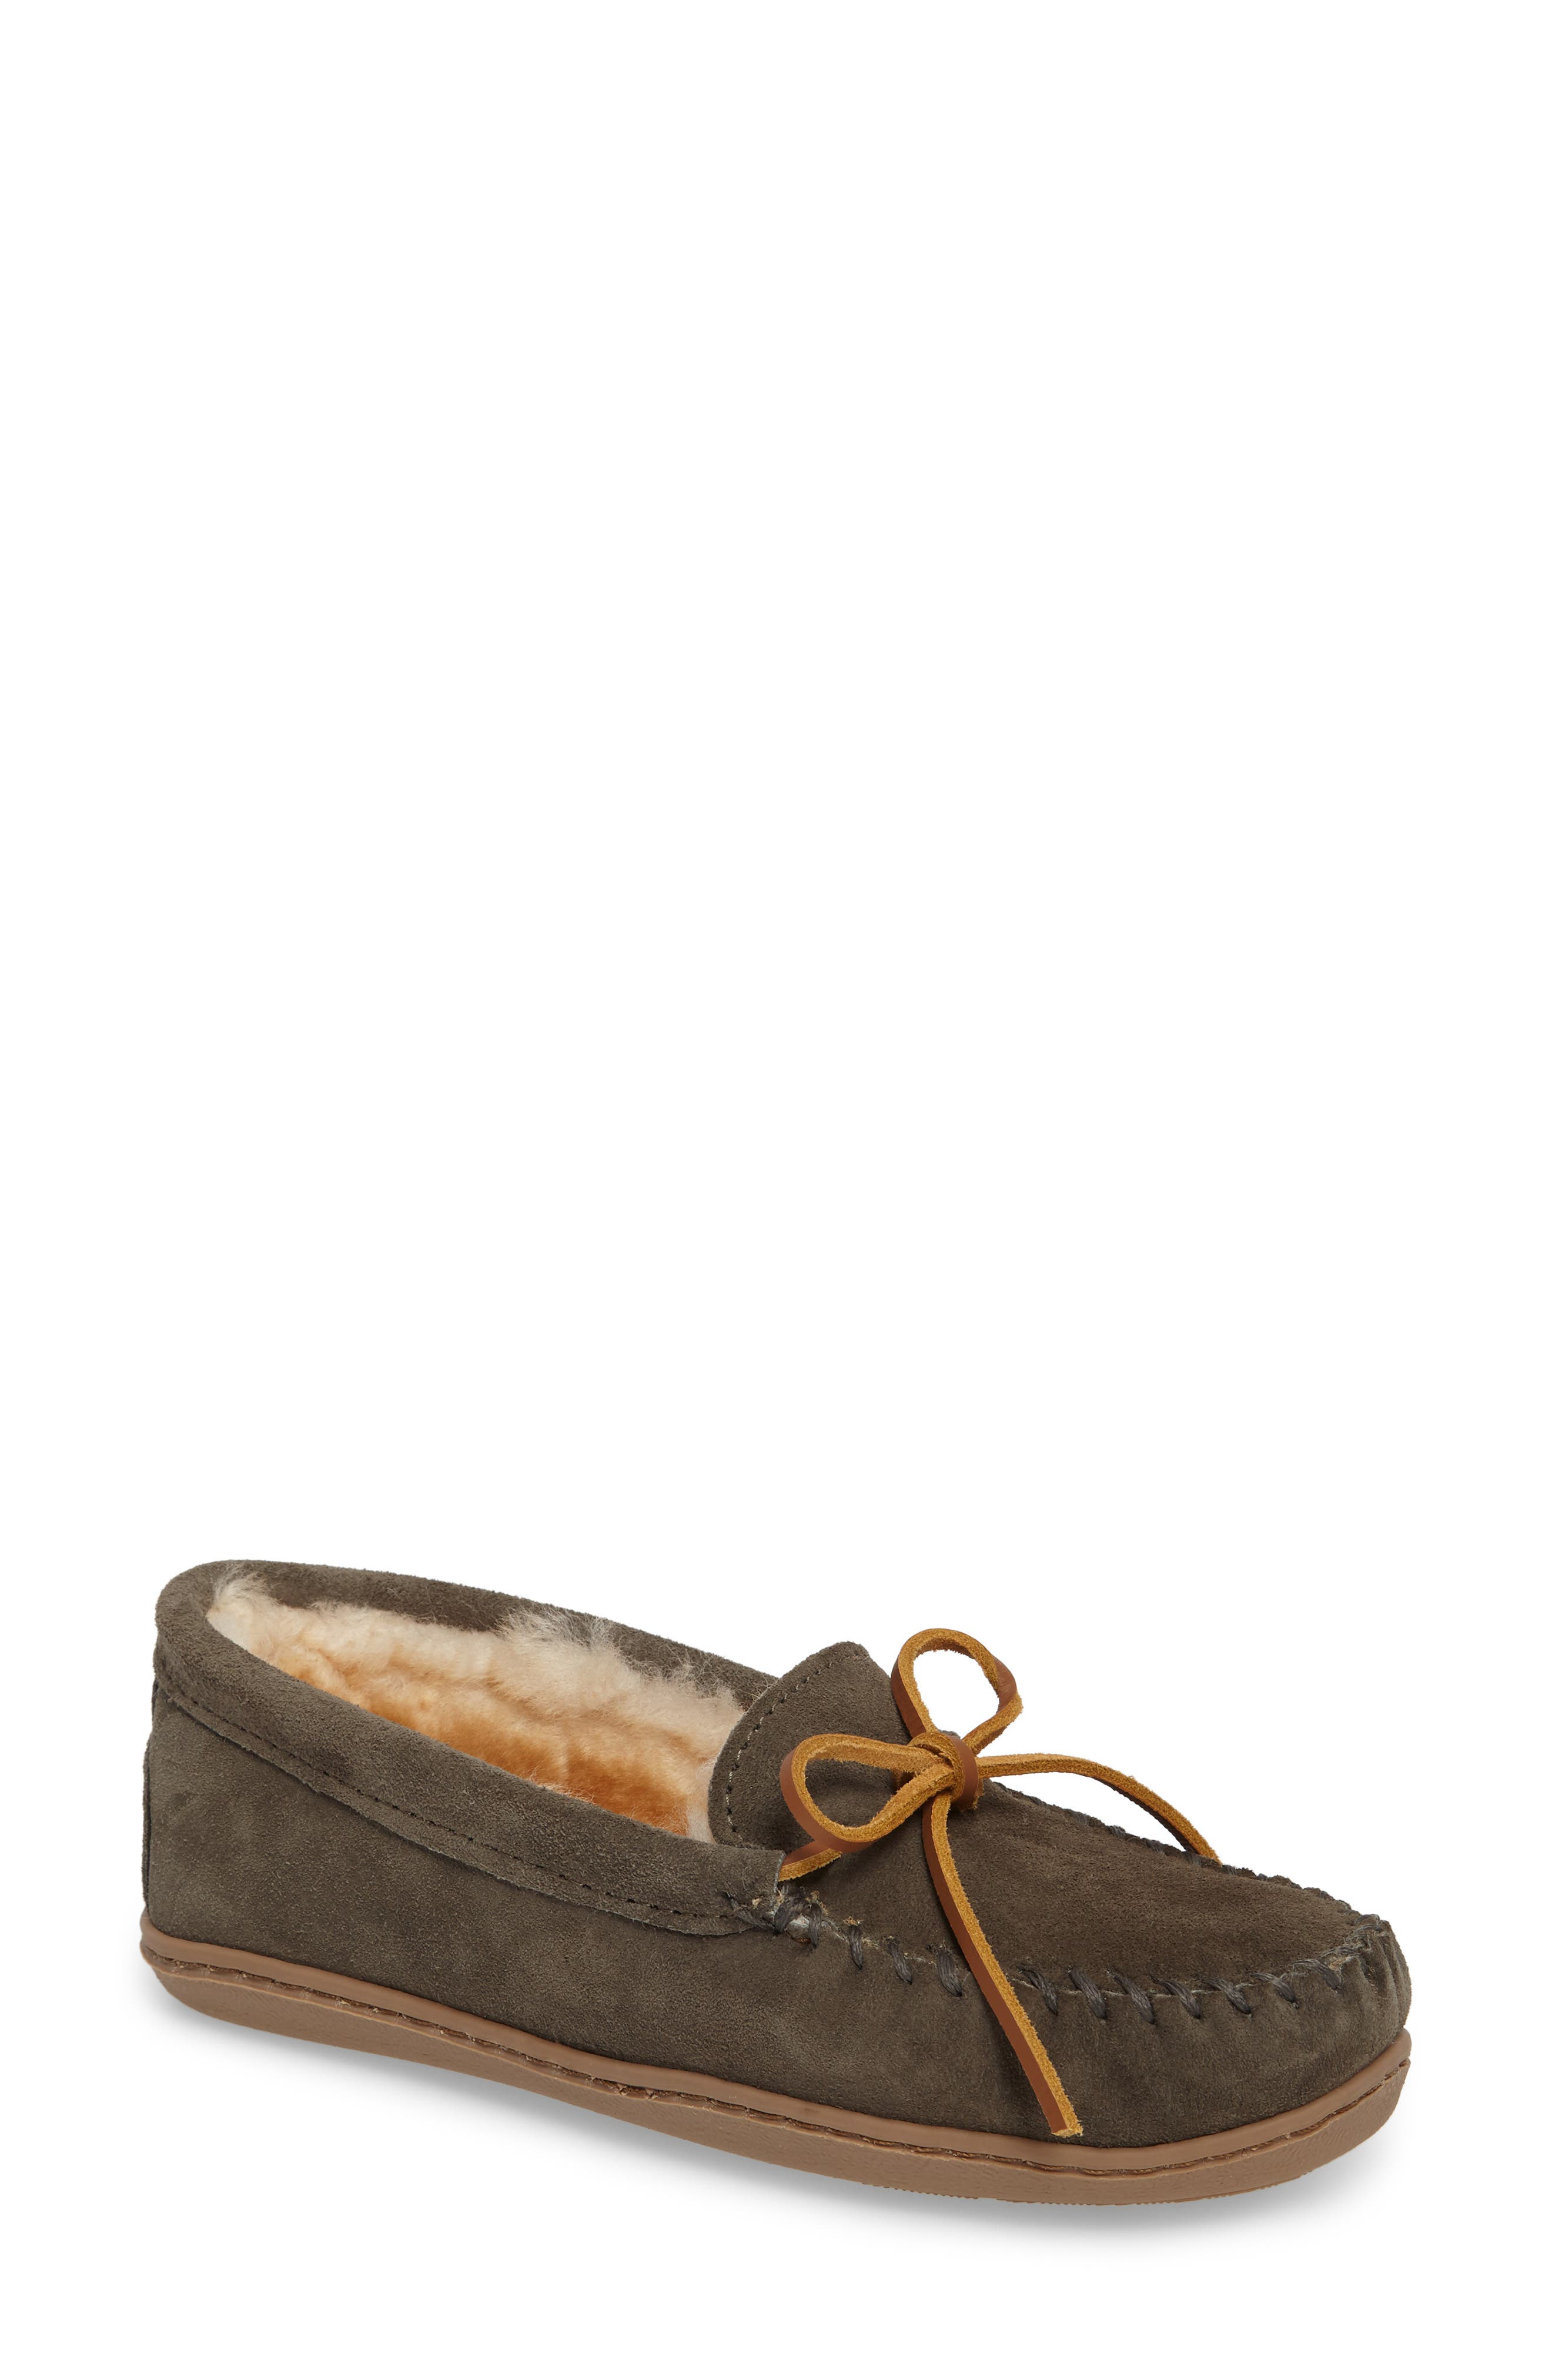 Genuine Shearling Hard Sole Moccasin Indoor/Outdoor Slipper,                             Main thumbnail 1, color,                             Grey